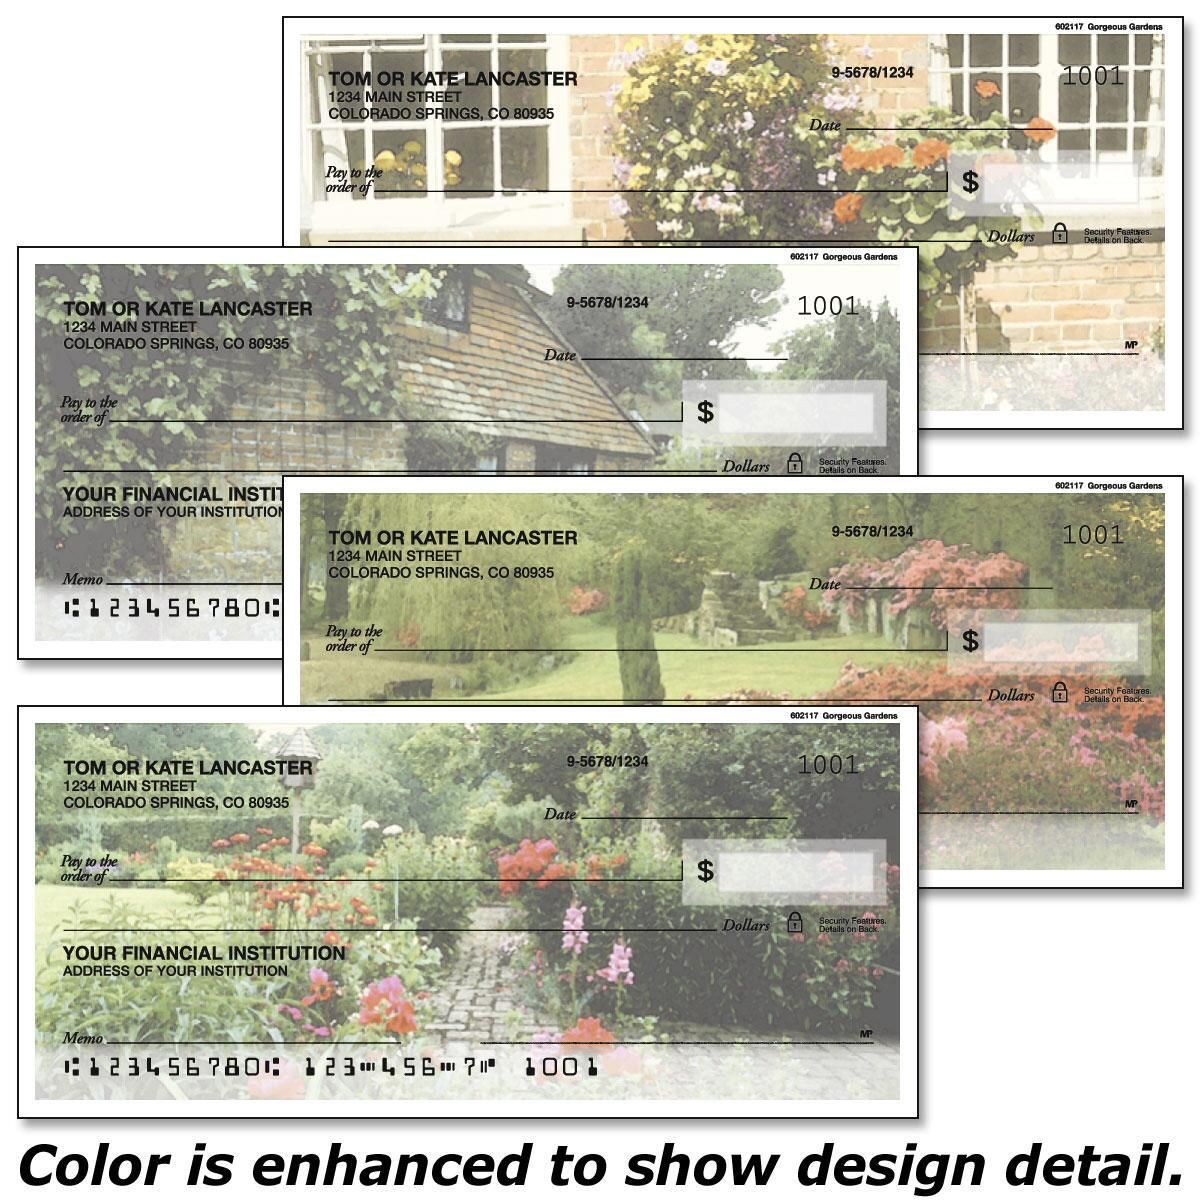 Gorgeous Gardens Duplicate Checks